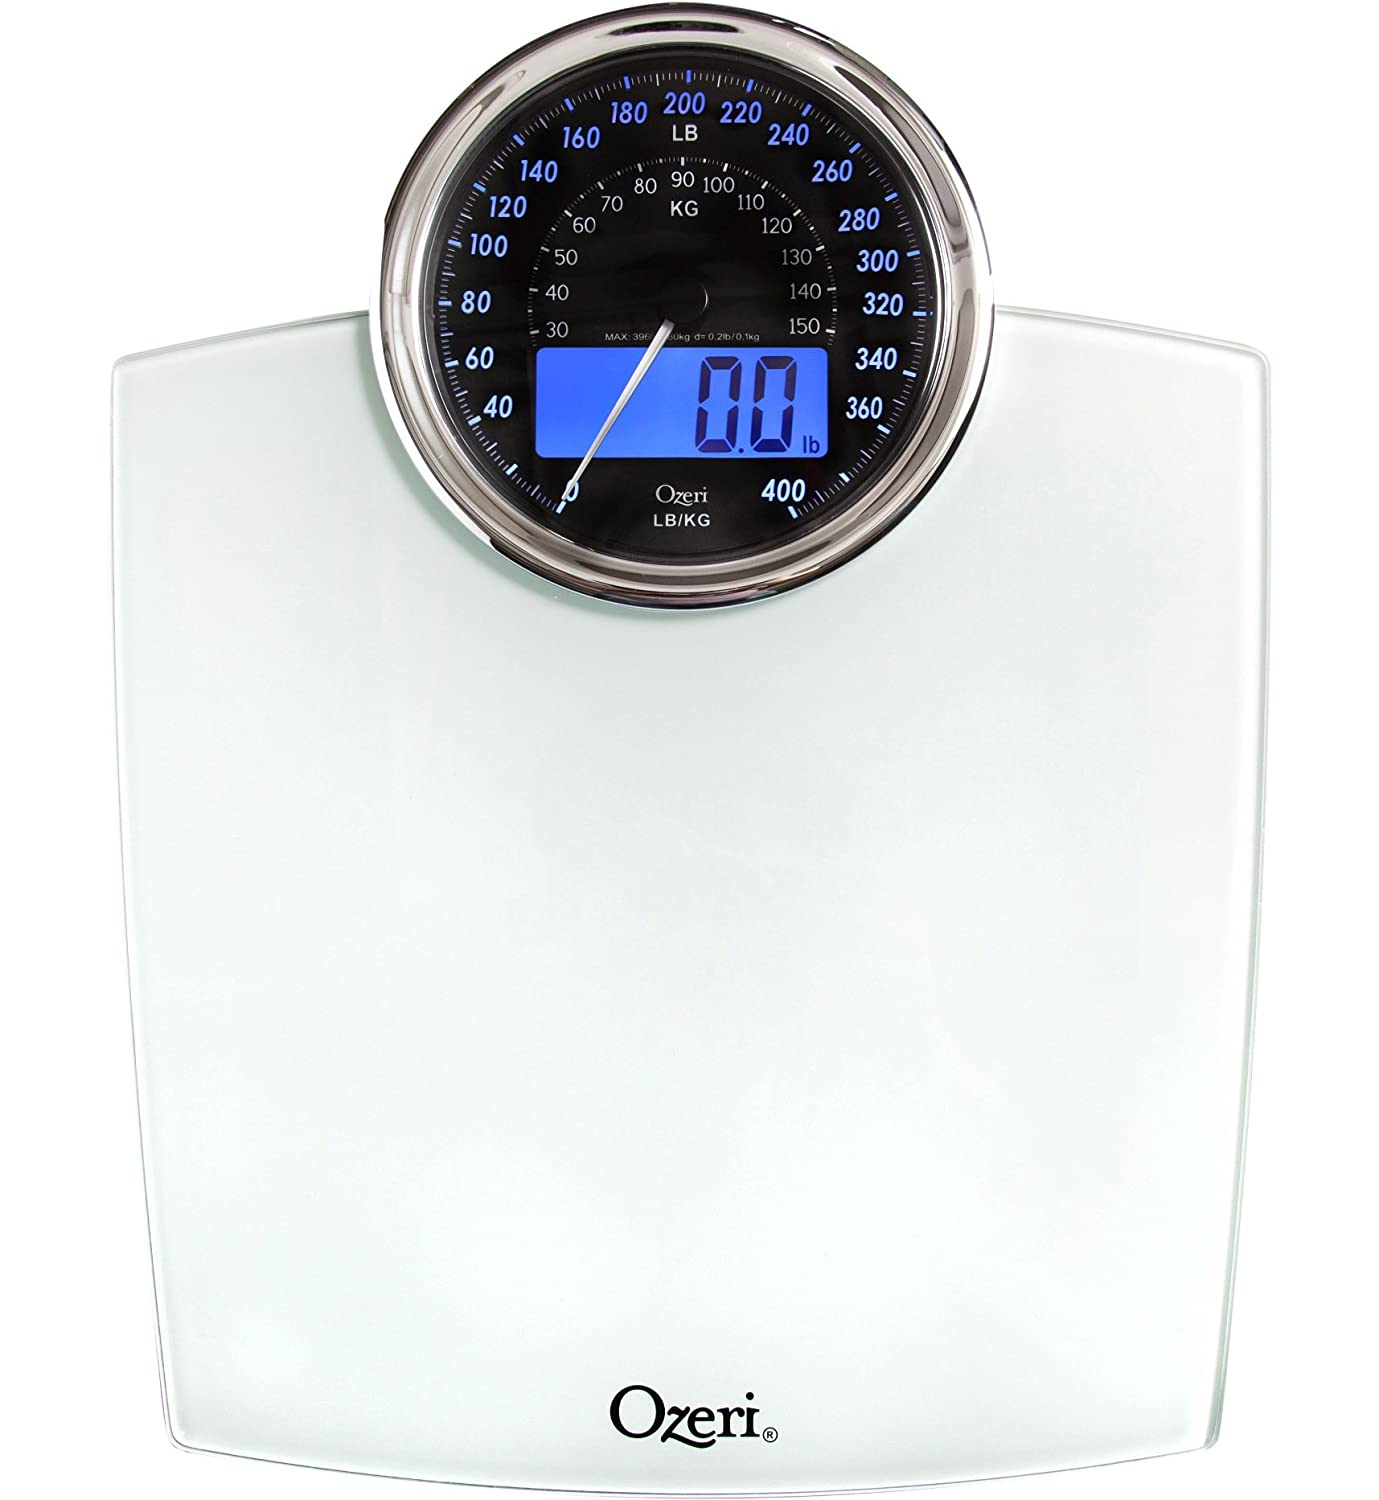 Amazoncom Ozeri ZBW Rev Digital Bathroom Scale With Electro - Large display digital bathroom scales for bathroom decor ideas